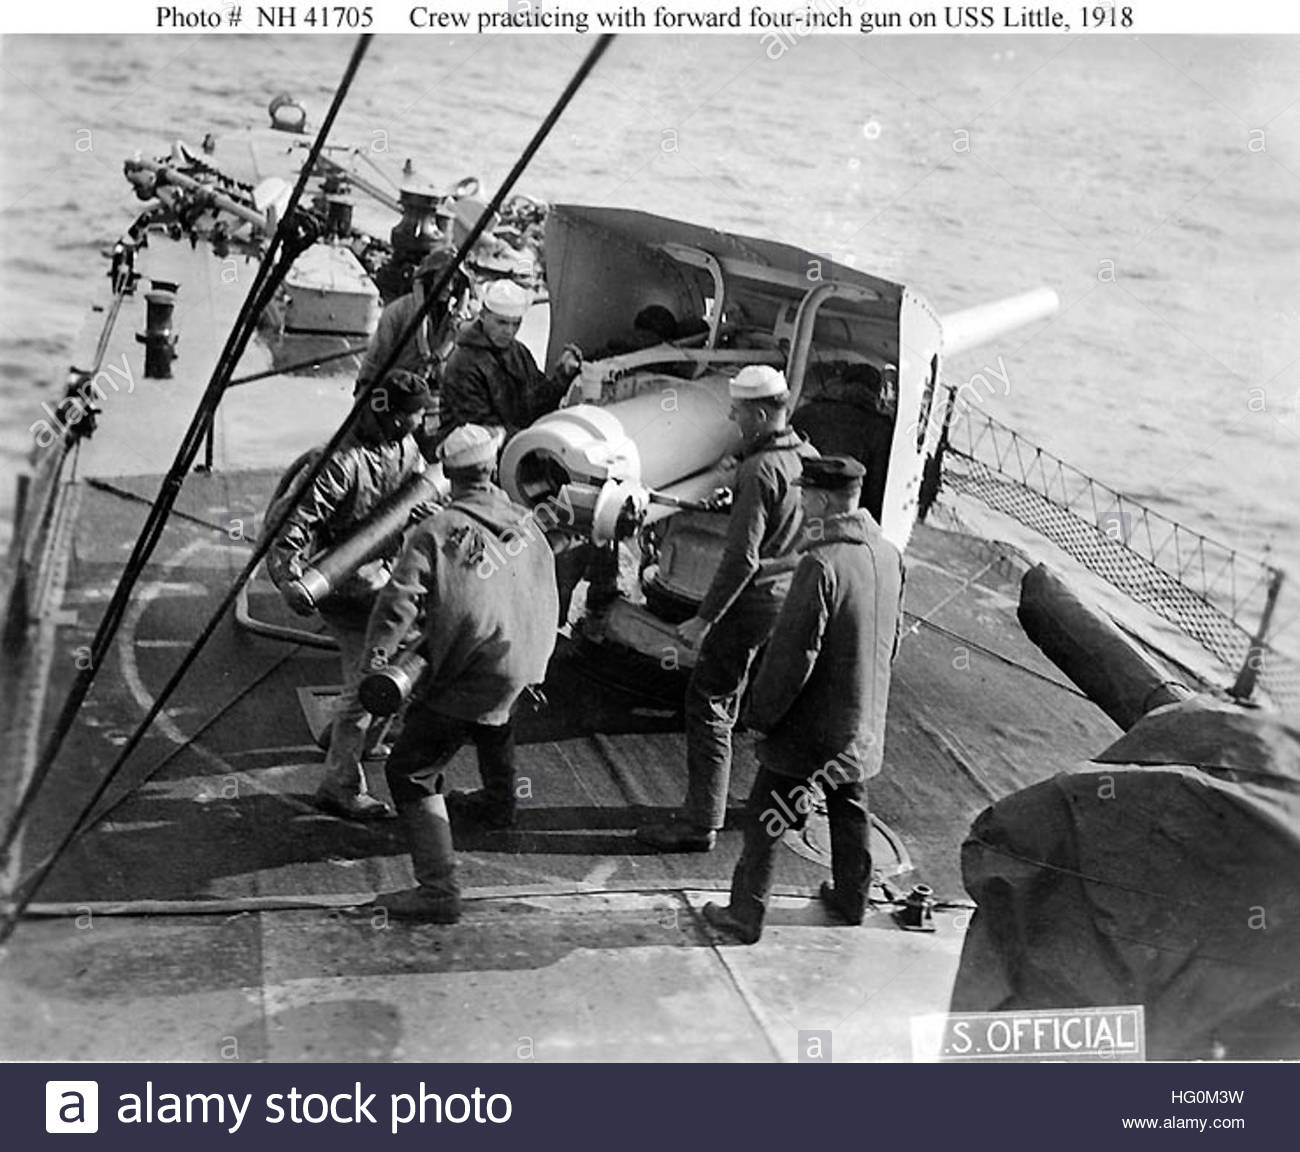 USS Little 4 inch gun and crew 1918 h41705 - Stock Image